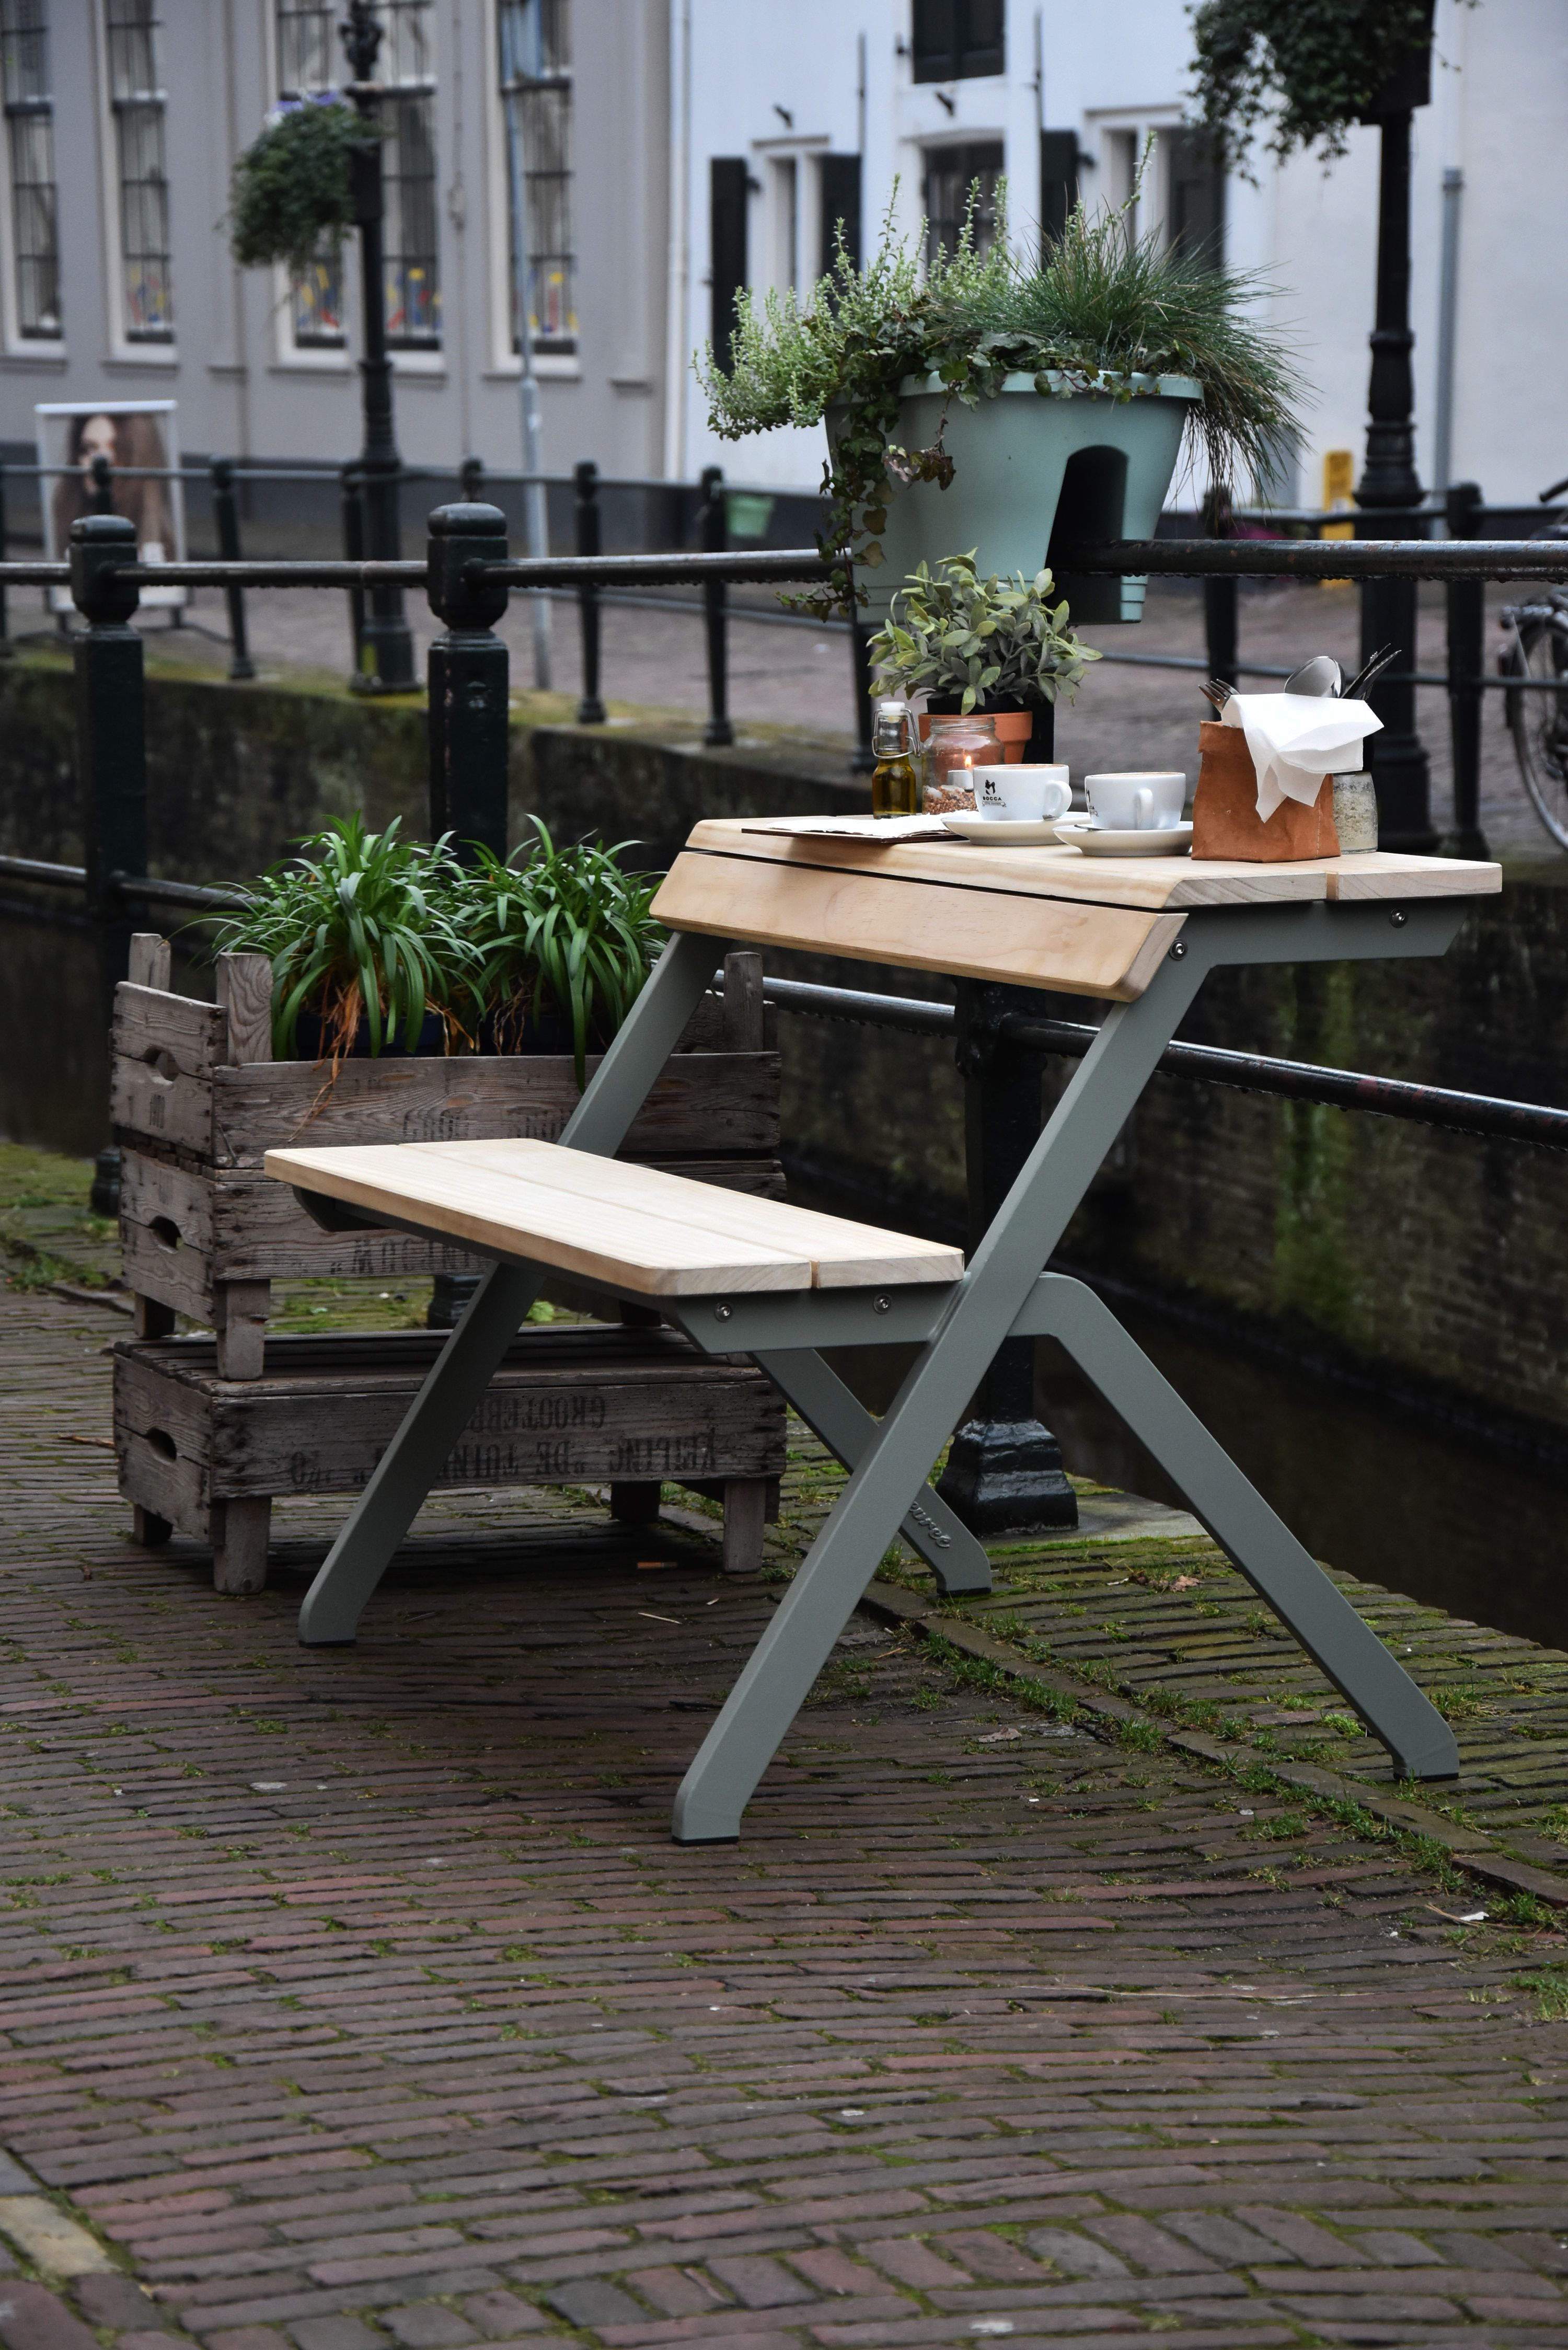 The tabelebench is an ideal workplace but can also function as a terrace